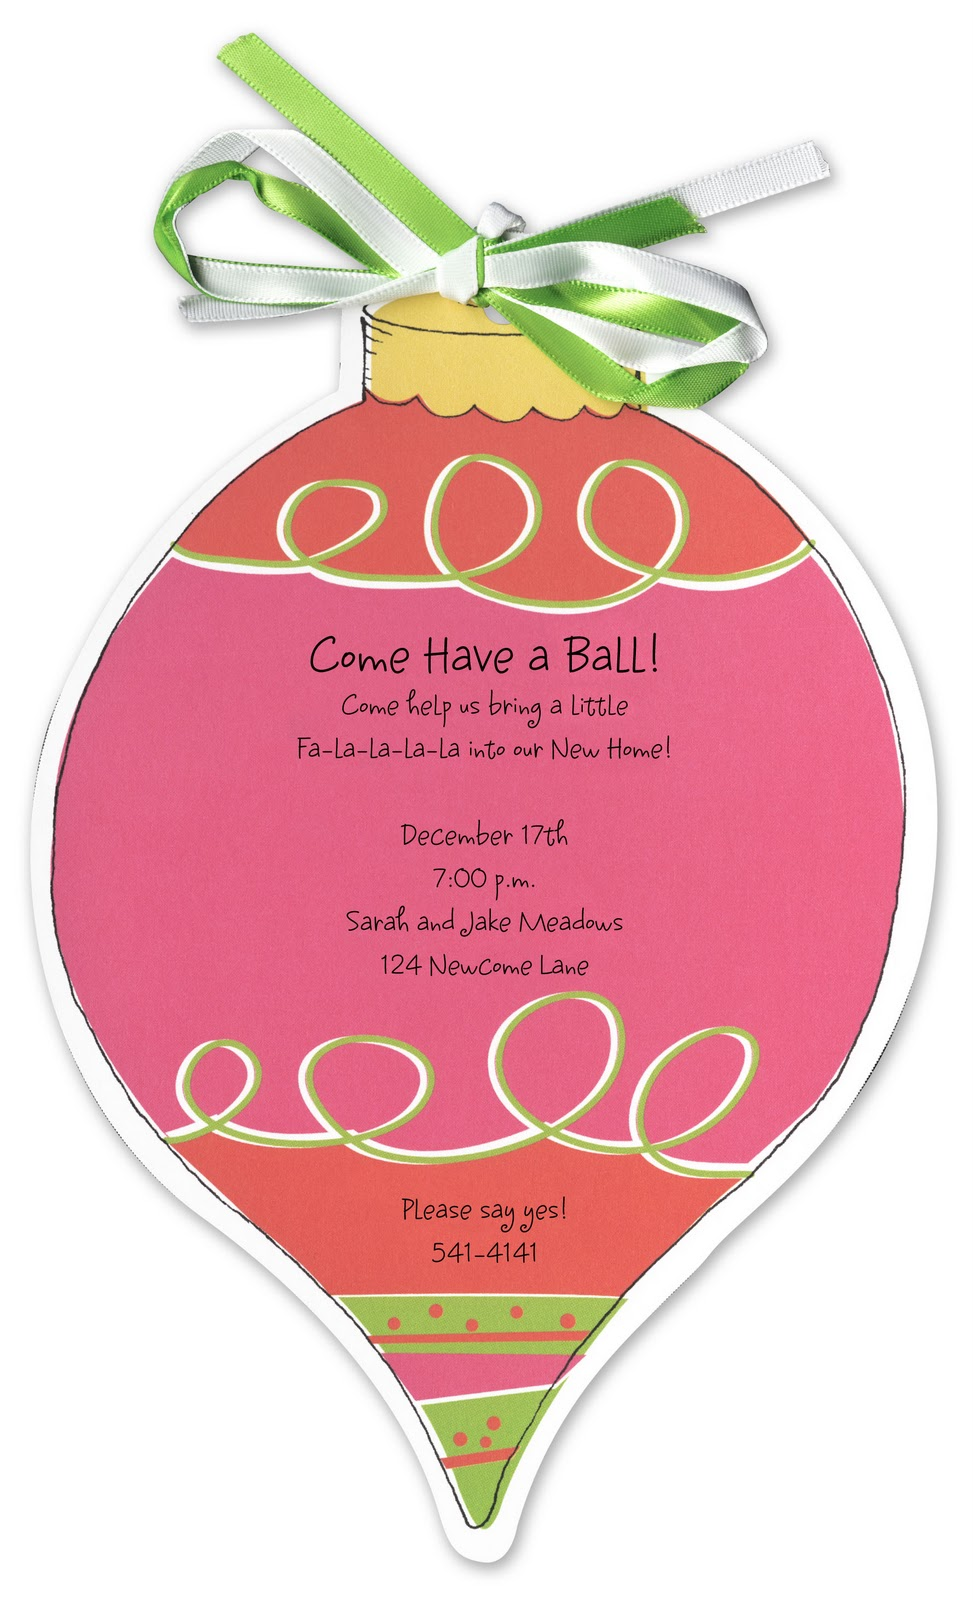 Ornament party invitations - Decorating For This Party Is Simple Simply Hang Ornaments In The Party Space